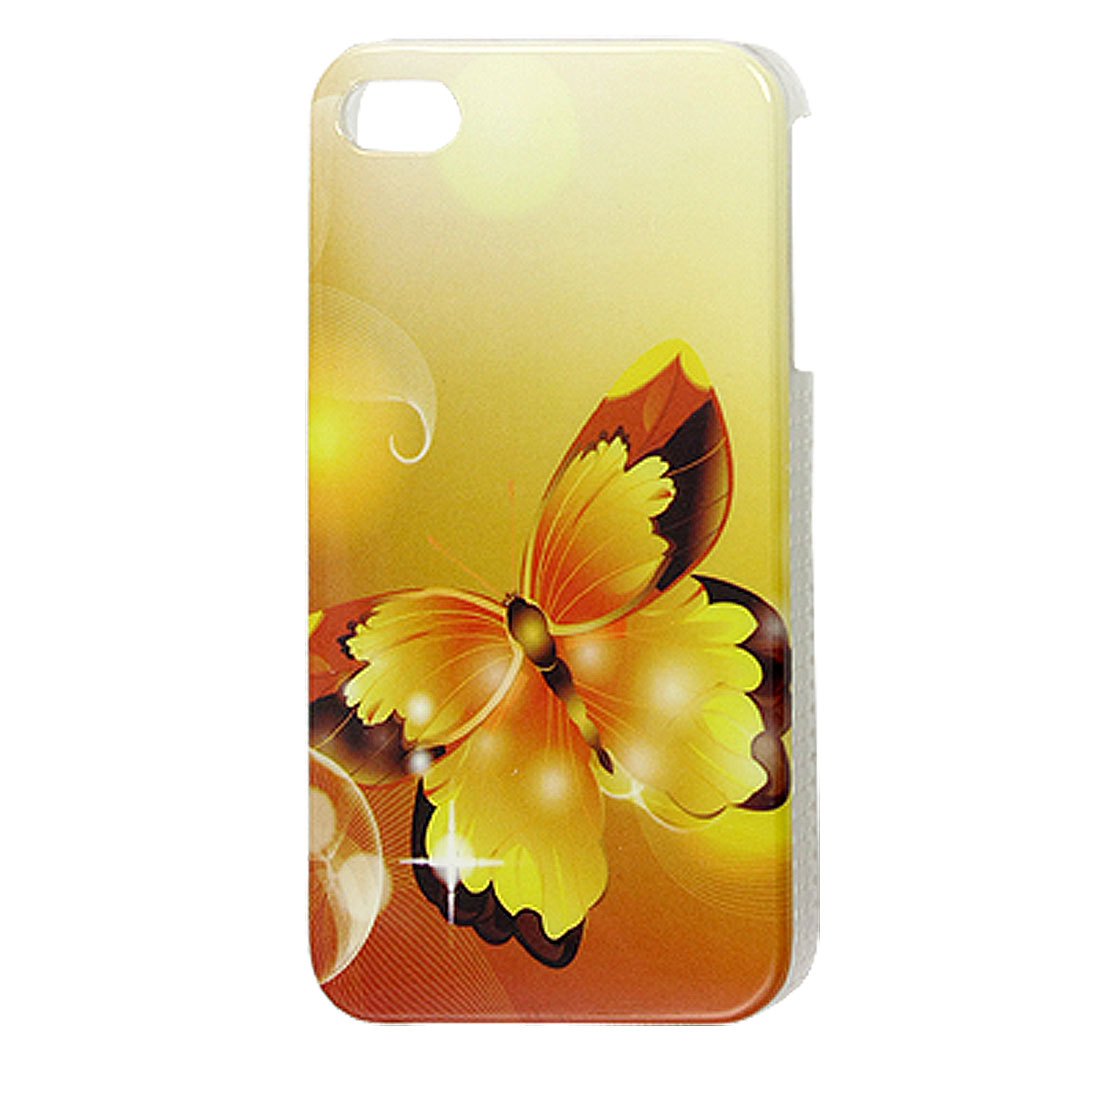 Butterfly Pattern Hard Plastic Back Case Yellow for iPhone 4 4G 4S